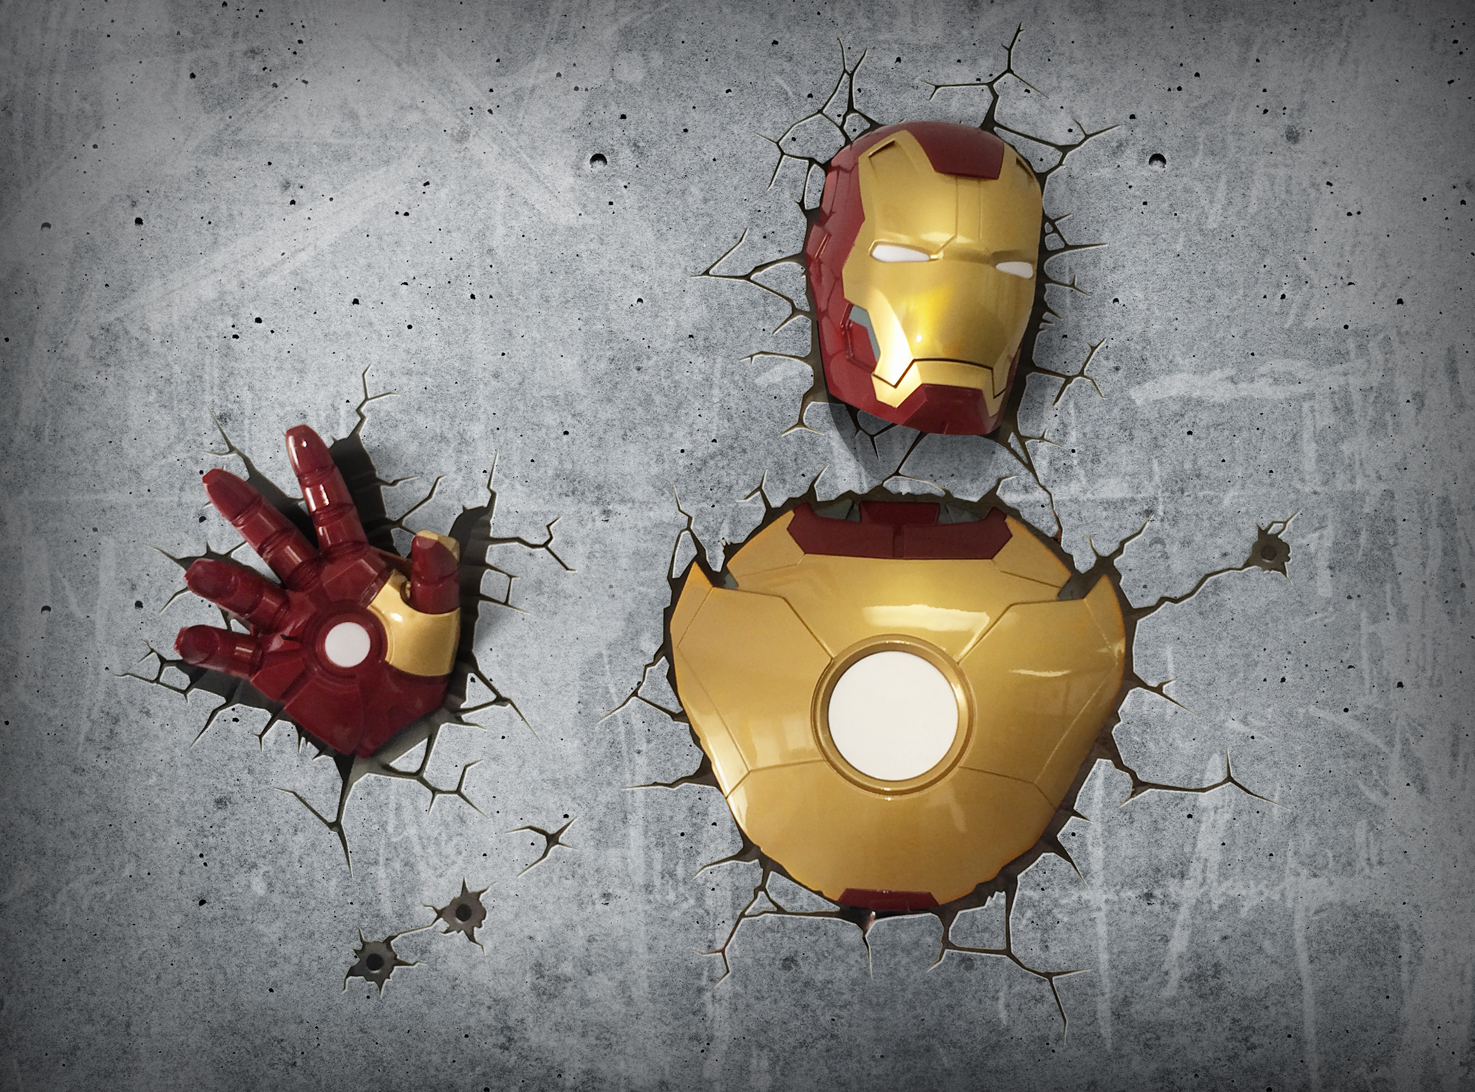 Iron Man Product Design